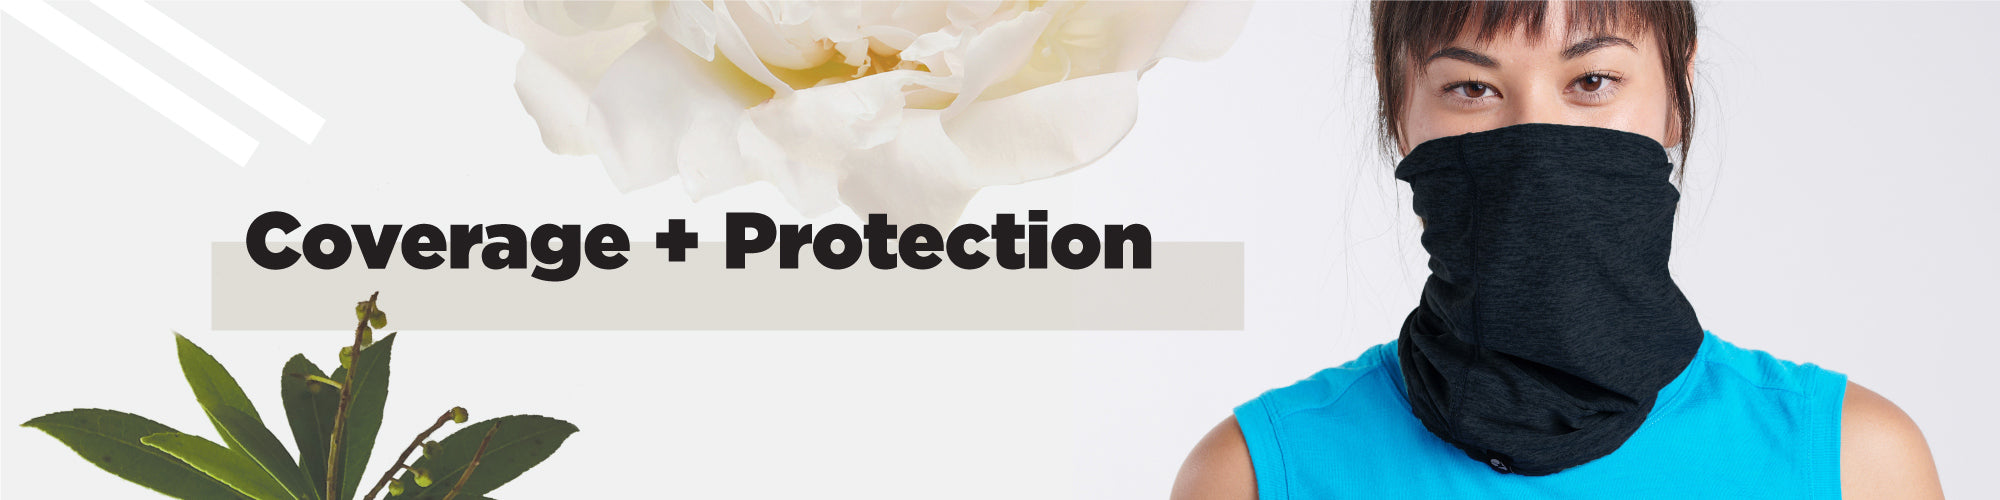 coverage + protection